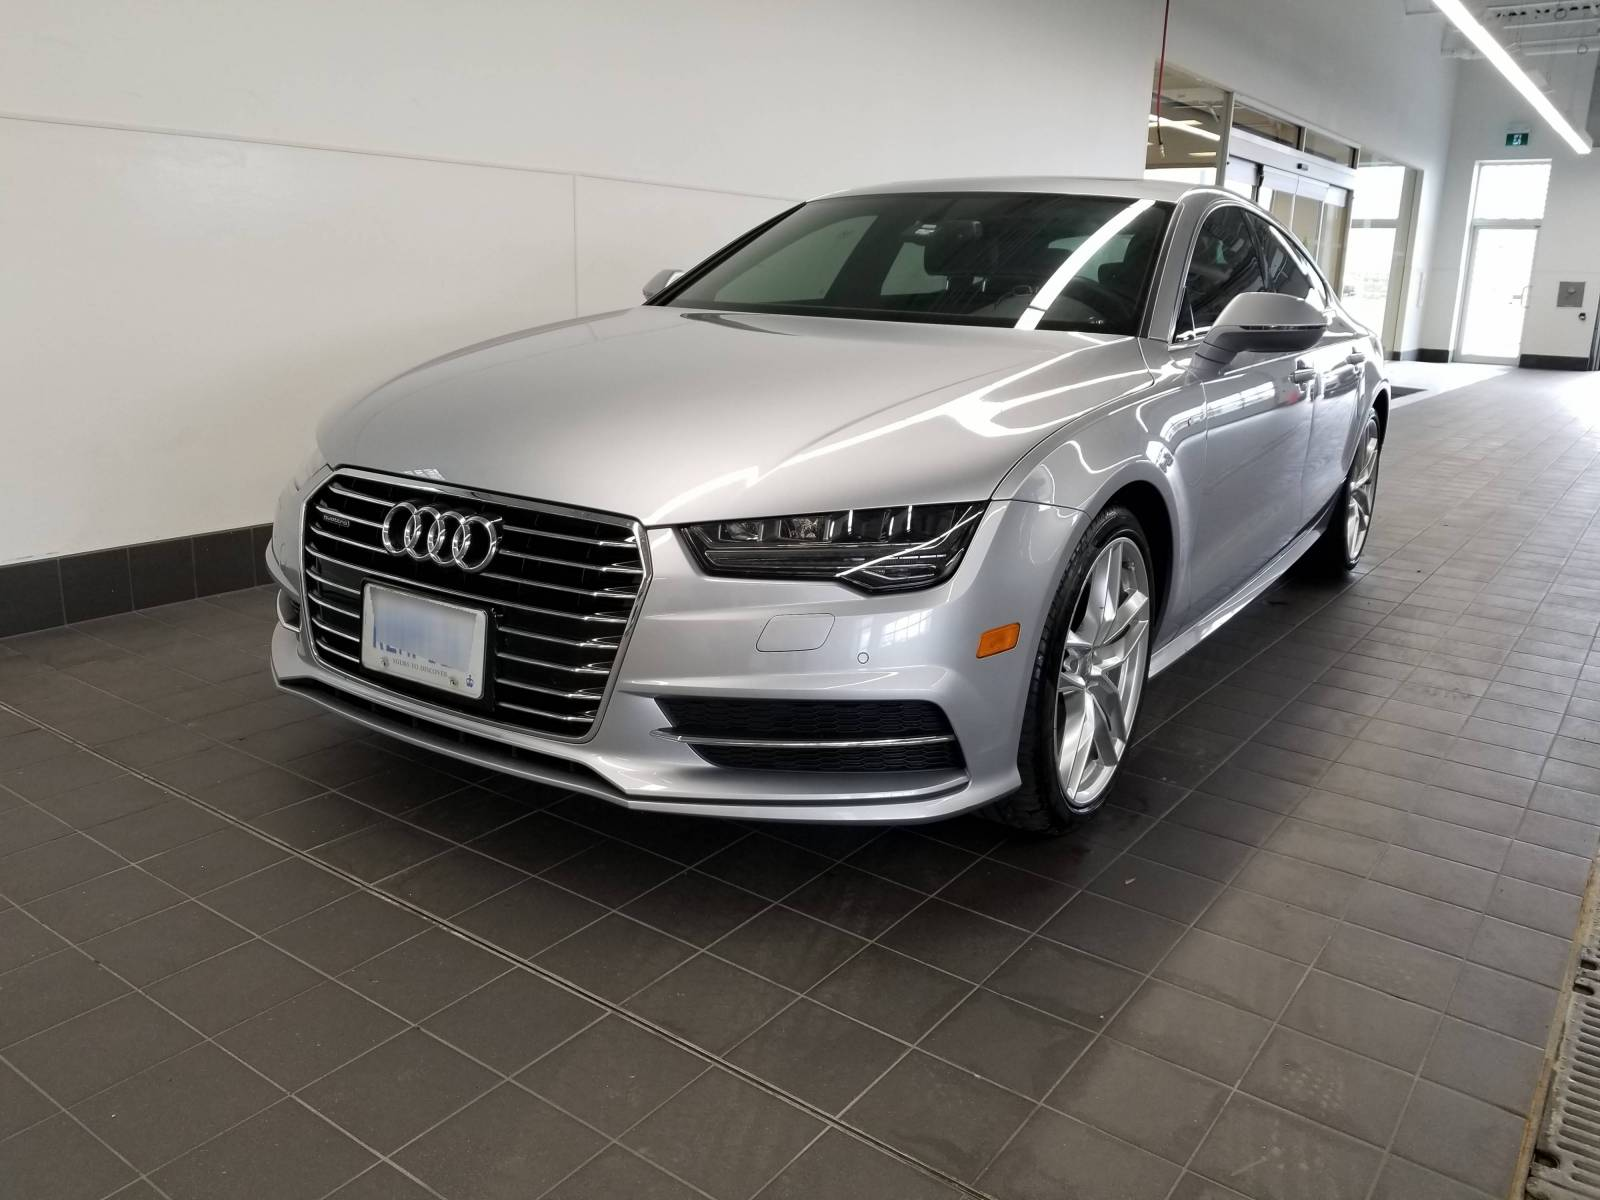 audi lease takeover in toronto on 2016 audi a7 3 0t. Black Bedroom Furniture Sets. Home Design Ideas